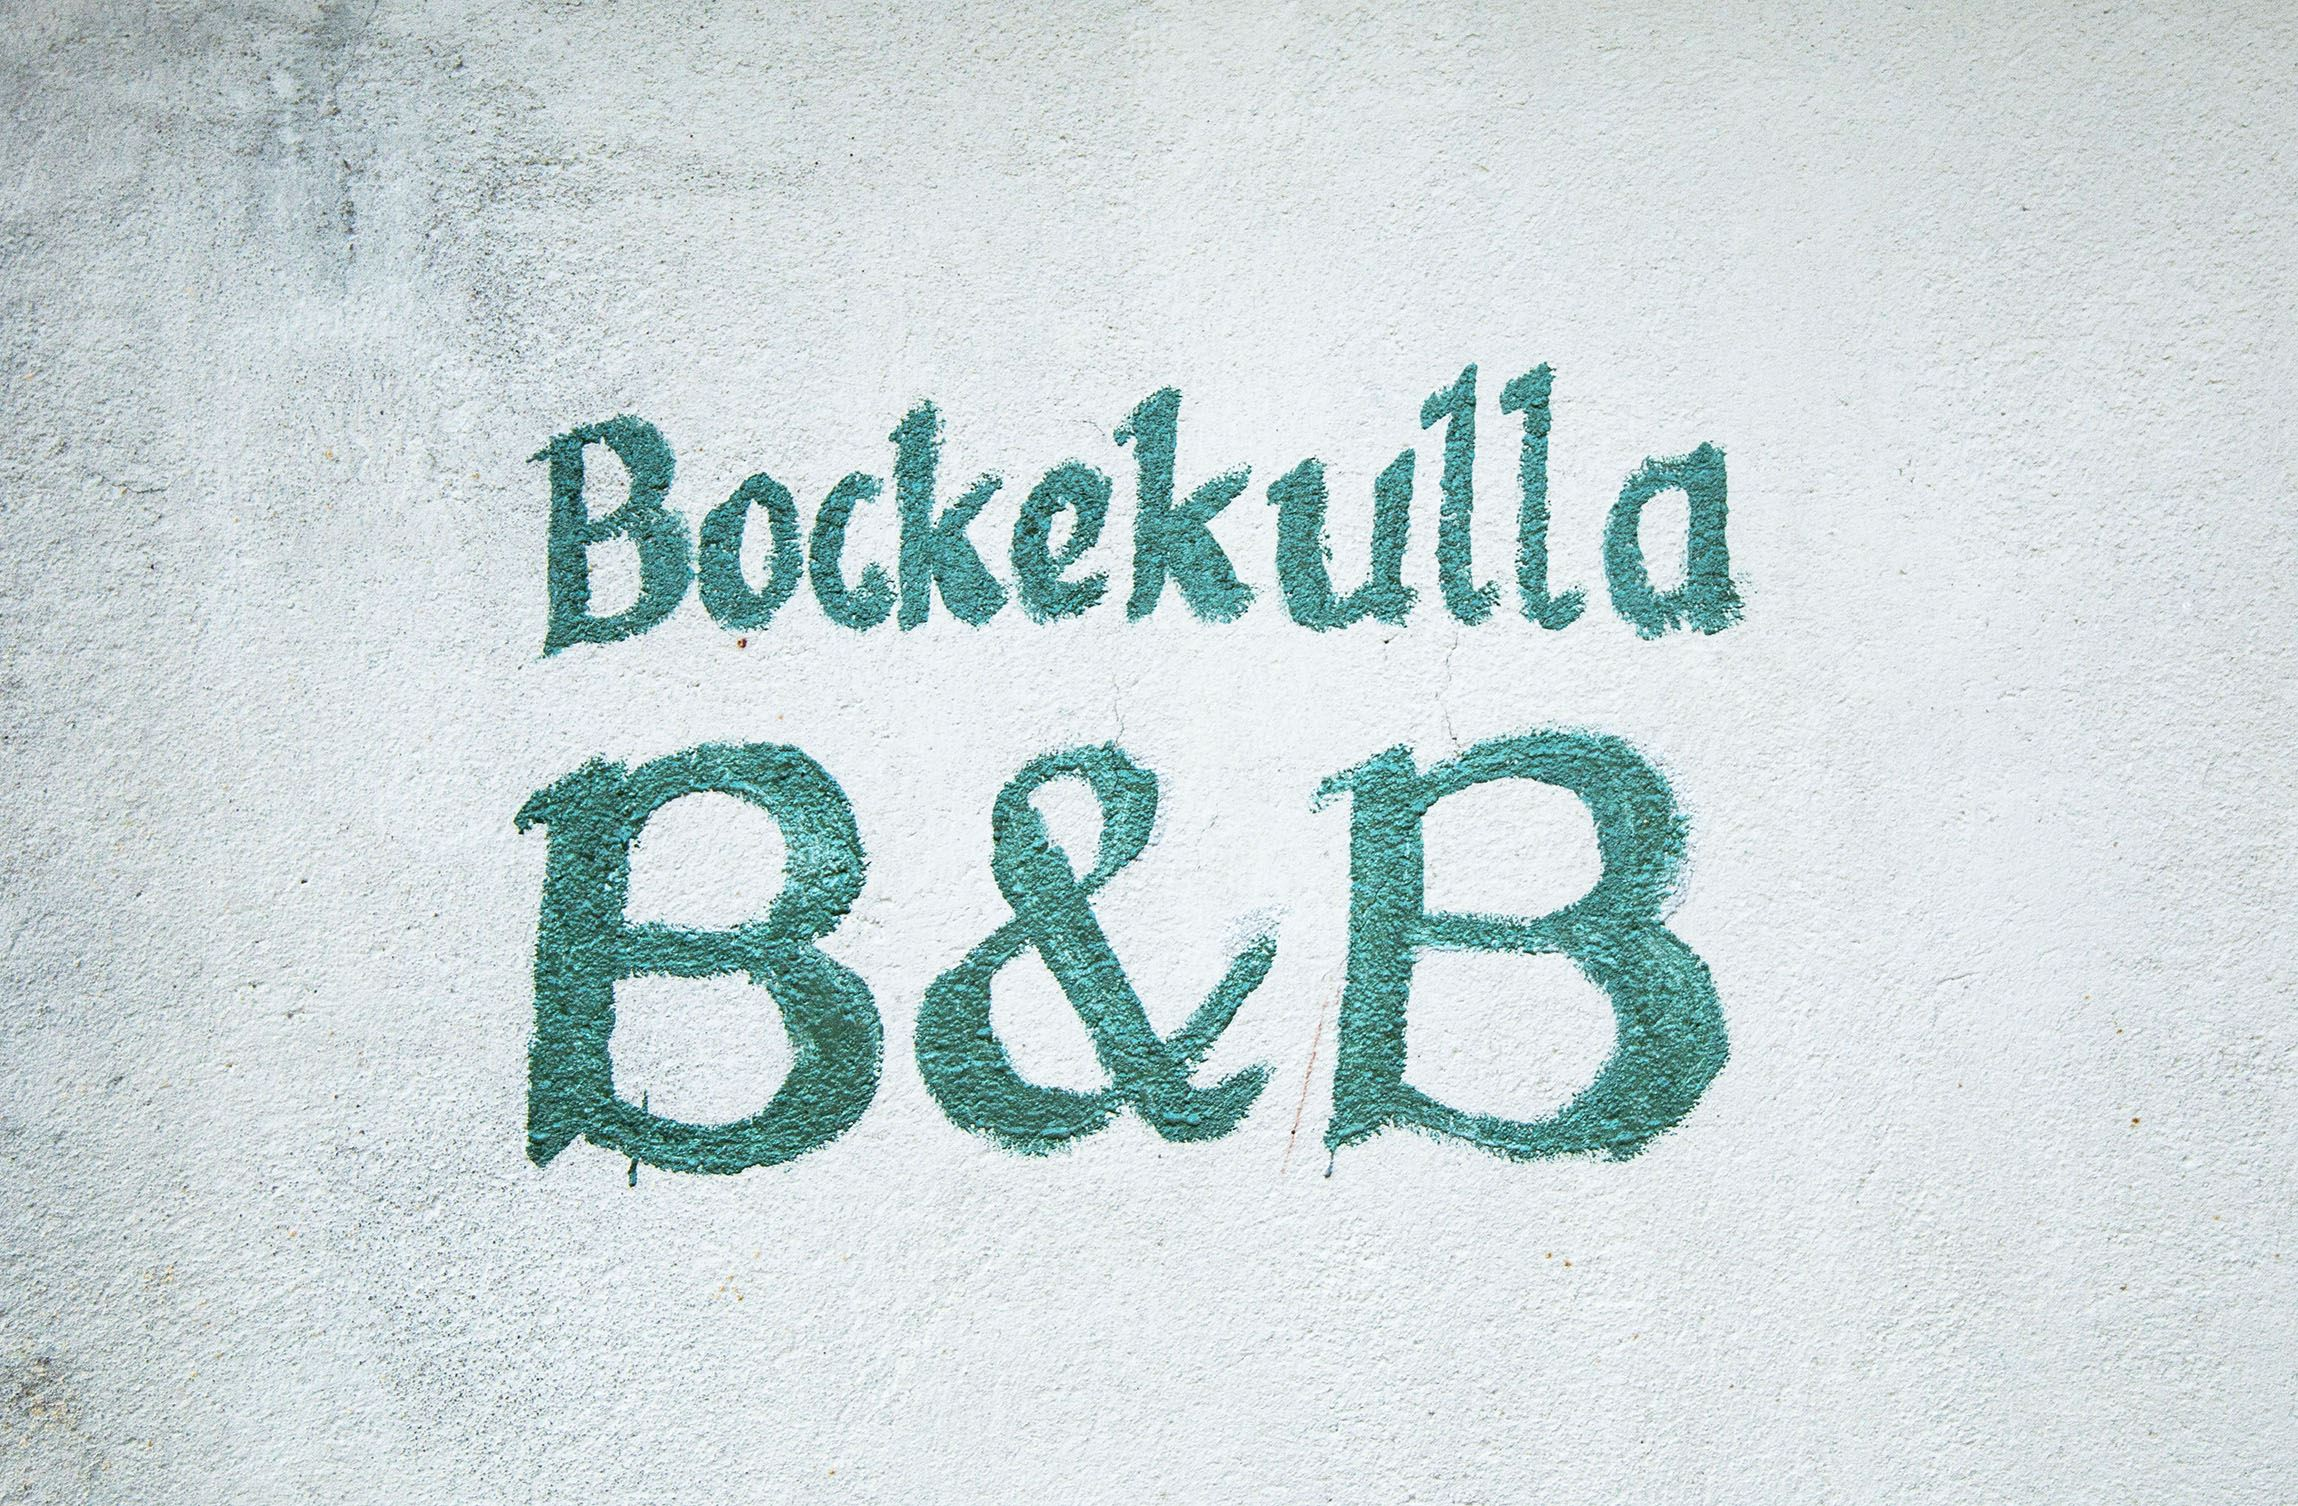 Bockekulla Bed & Breakfast